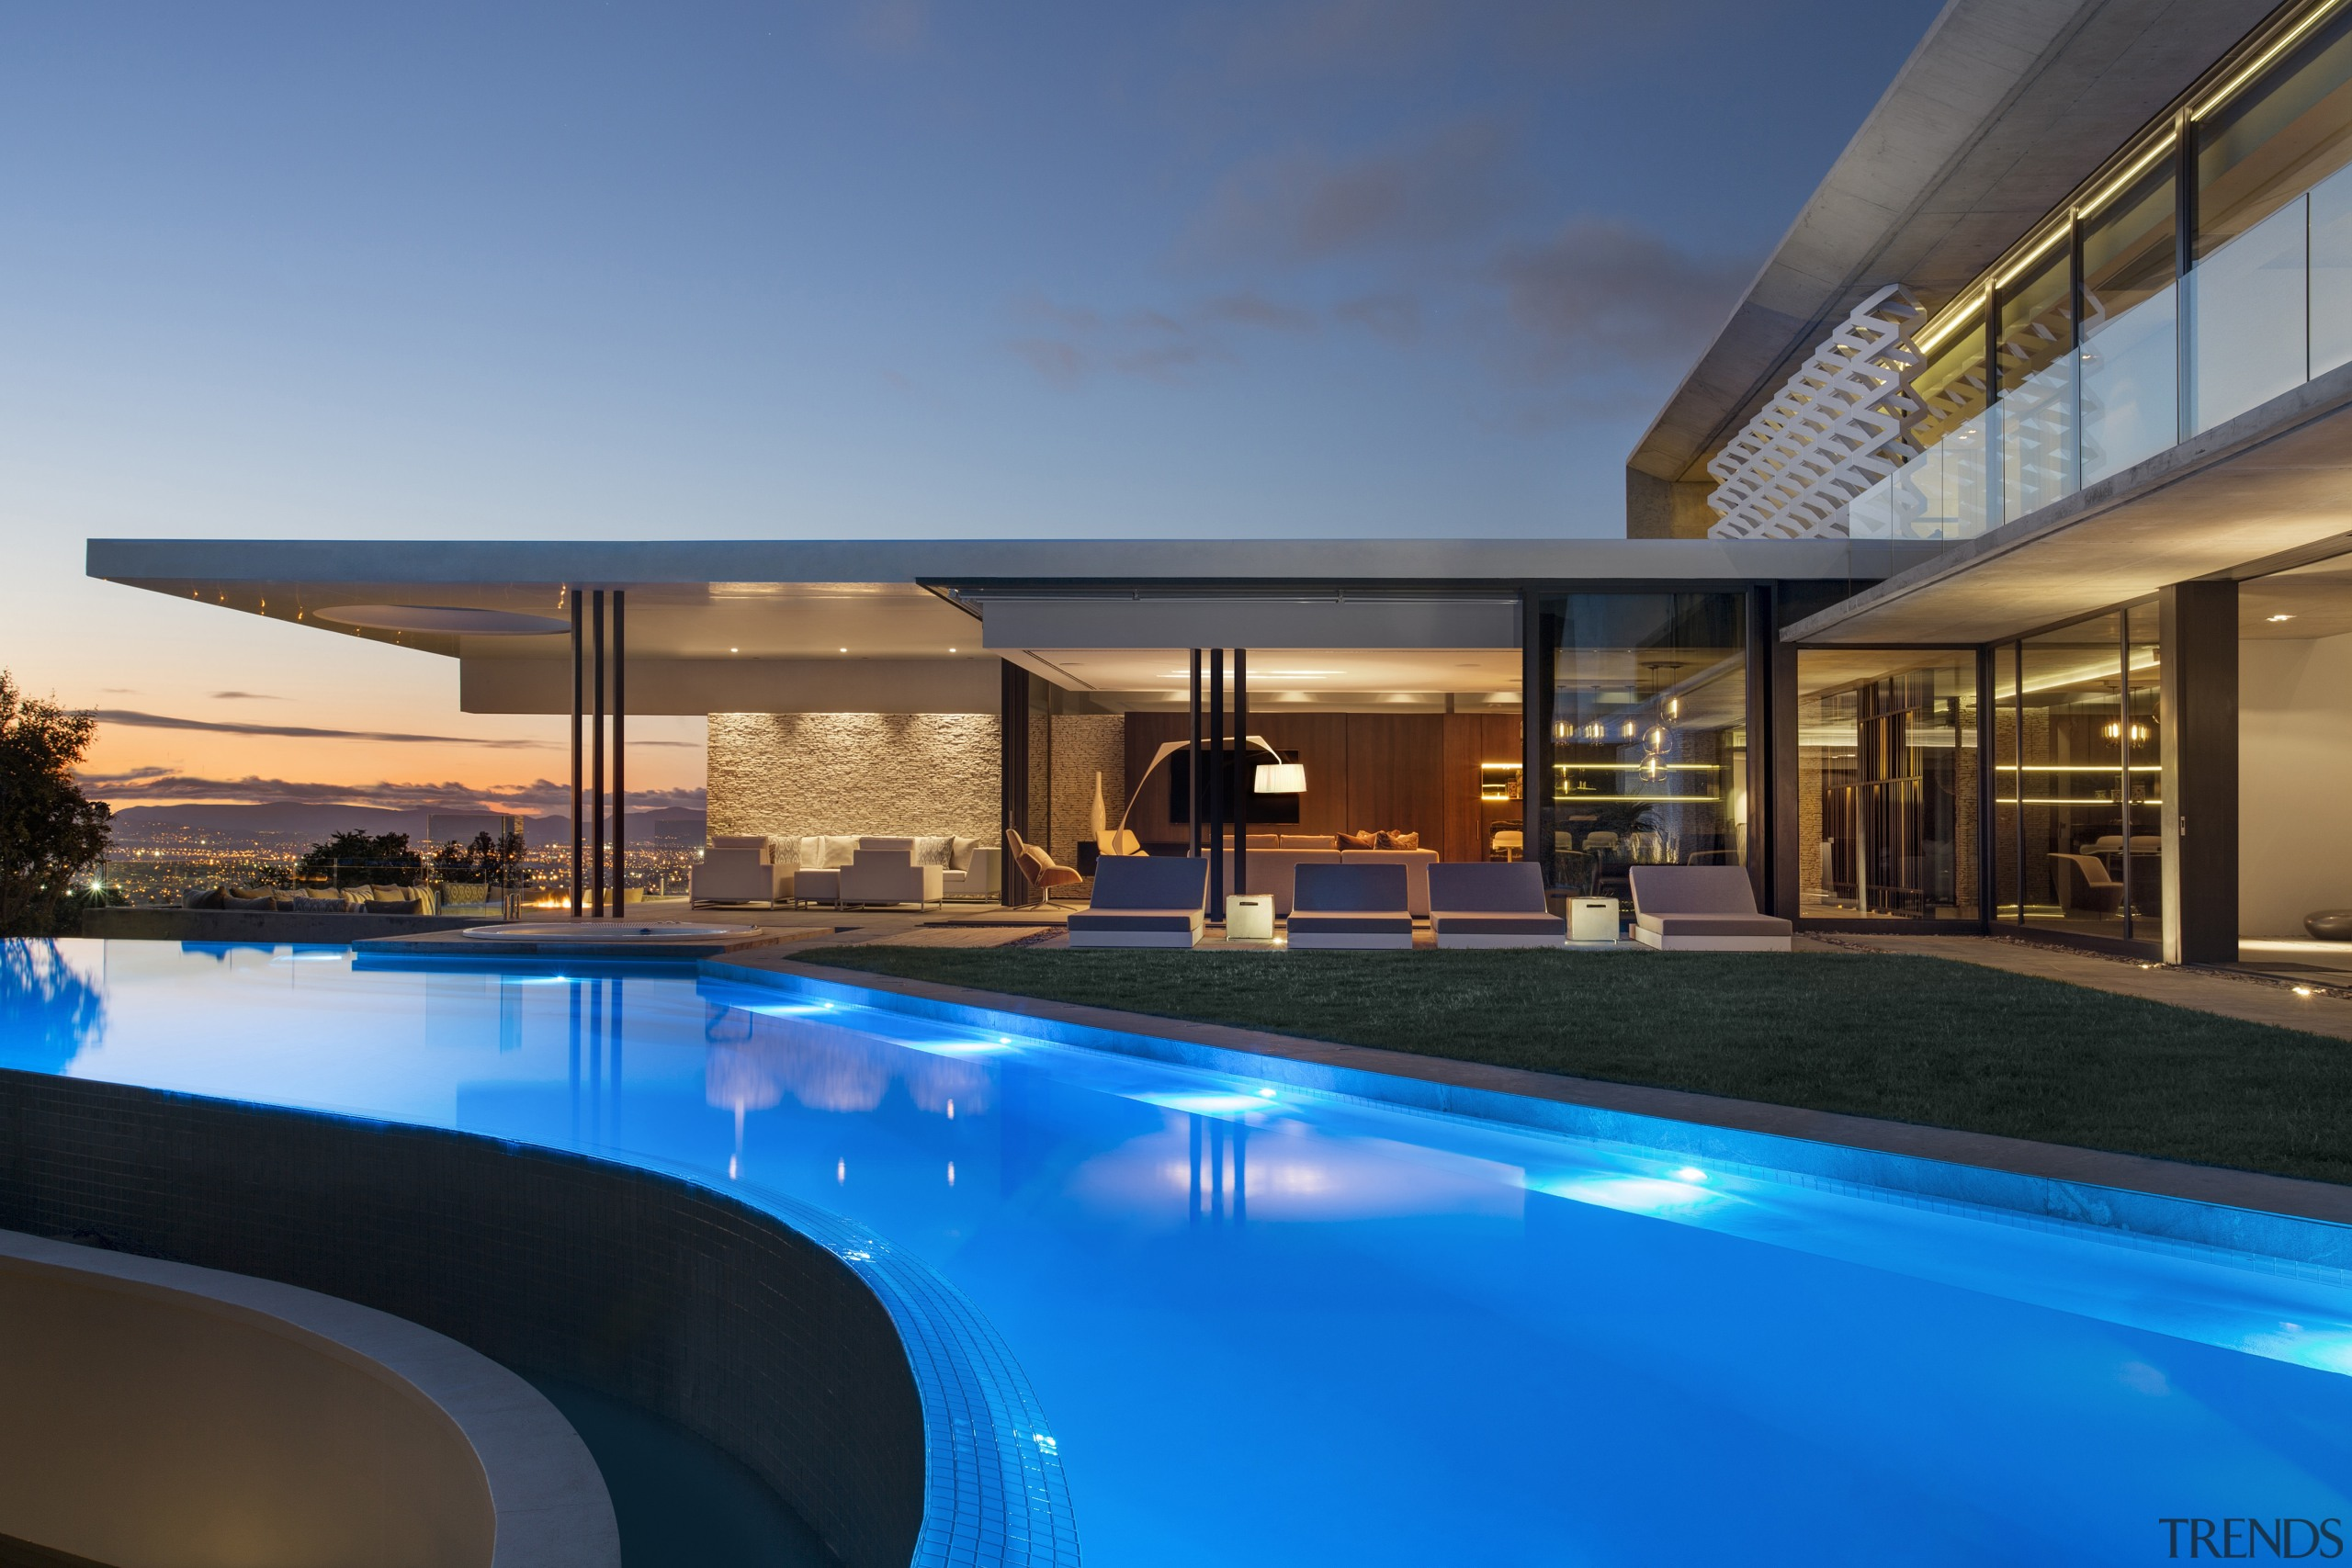 Set on the crest of a hill, this apartment, architecture, condominium, estate, home, hotel, house, leisure, lighting, property, real estate, reflection, resort, resort town, swimming pool, villa, blue